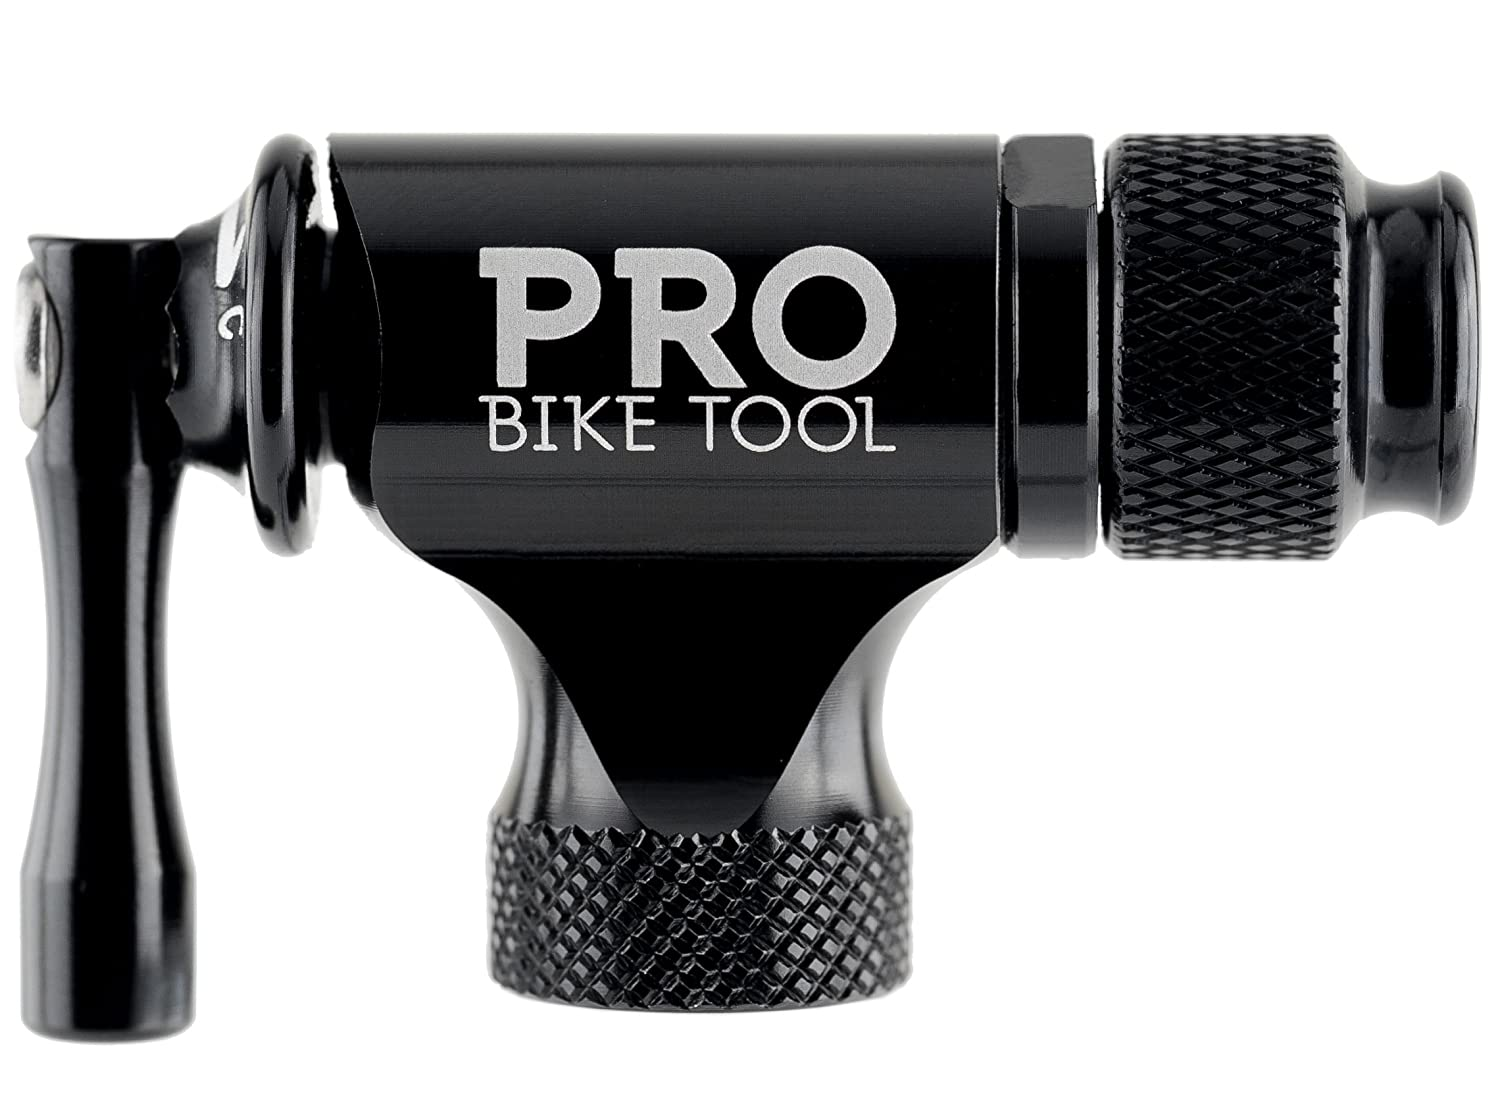 Pro Bike Tool CO2 Inflator Quick /& Easy No CO2 Cartridges Included Presta /& Schrader Valve Compatible Insulated Sleeve Bicycle Tyre Pump For Road /& Mountain Bikes